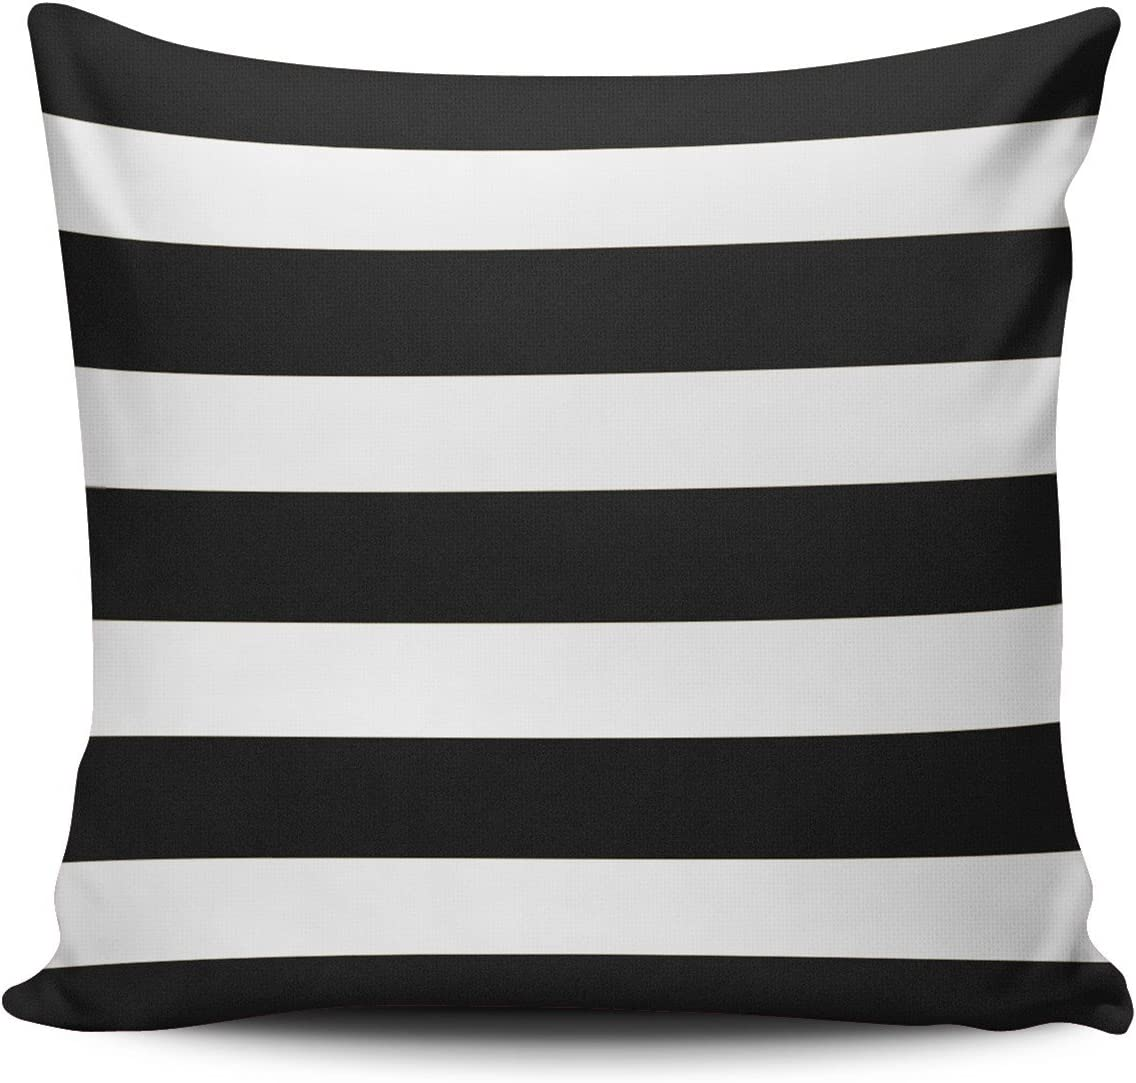 Hoooottle Custom Fancy 2021 autumn and winter Sale Special Price new Plush Black White Pillo Stripe Square